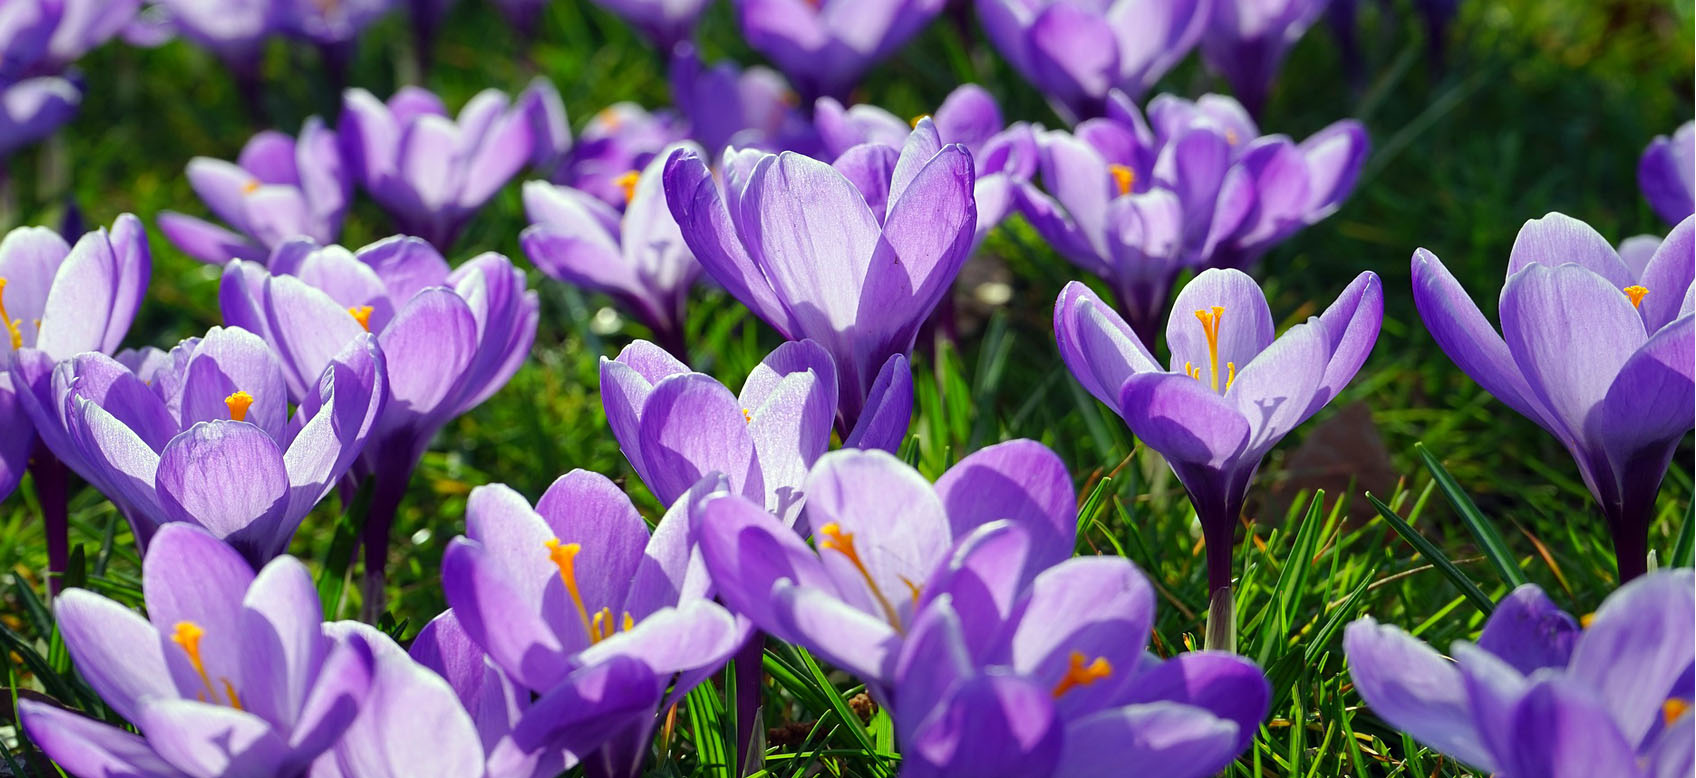 come-piantare-crocus